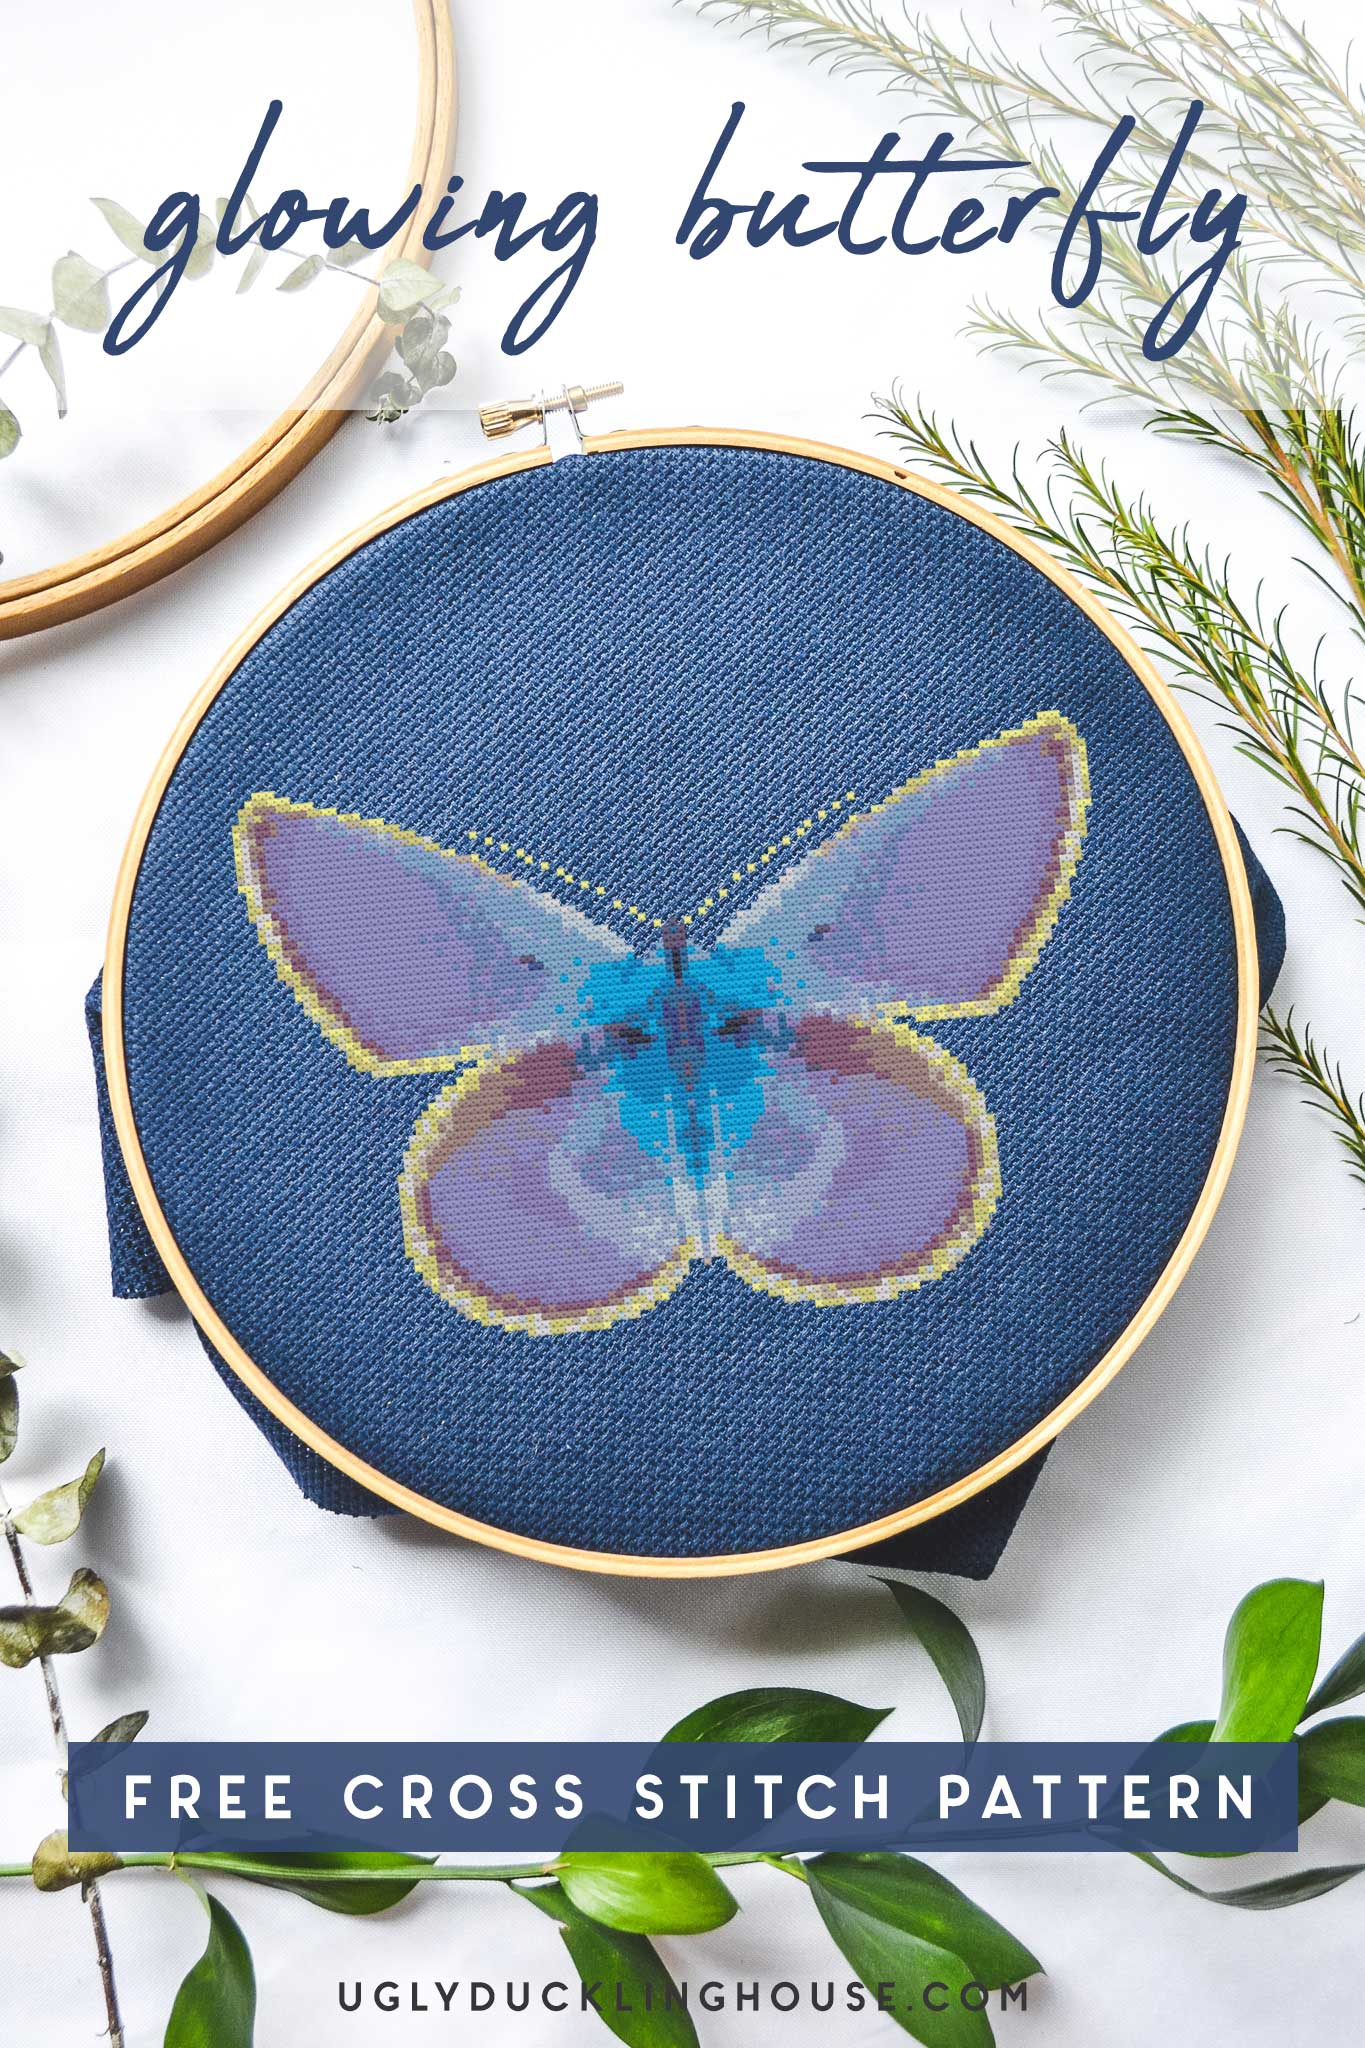 glowing butterfly cross stitch on navy embroidery hoop